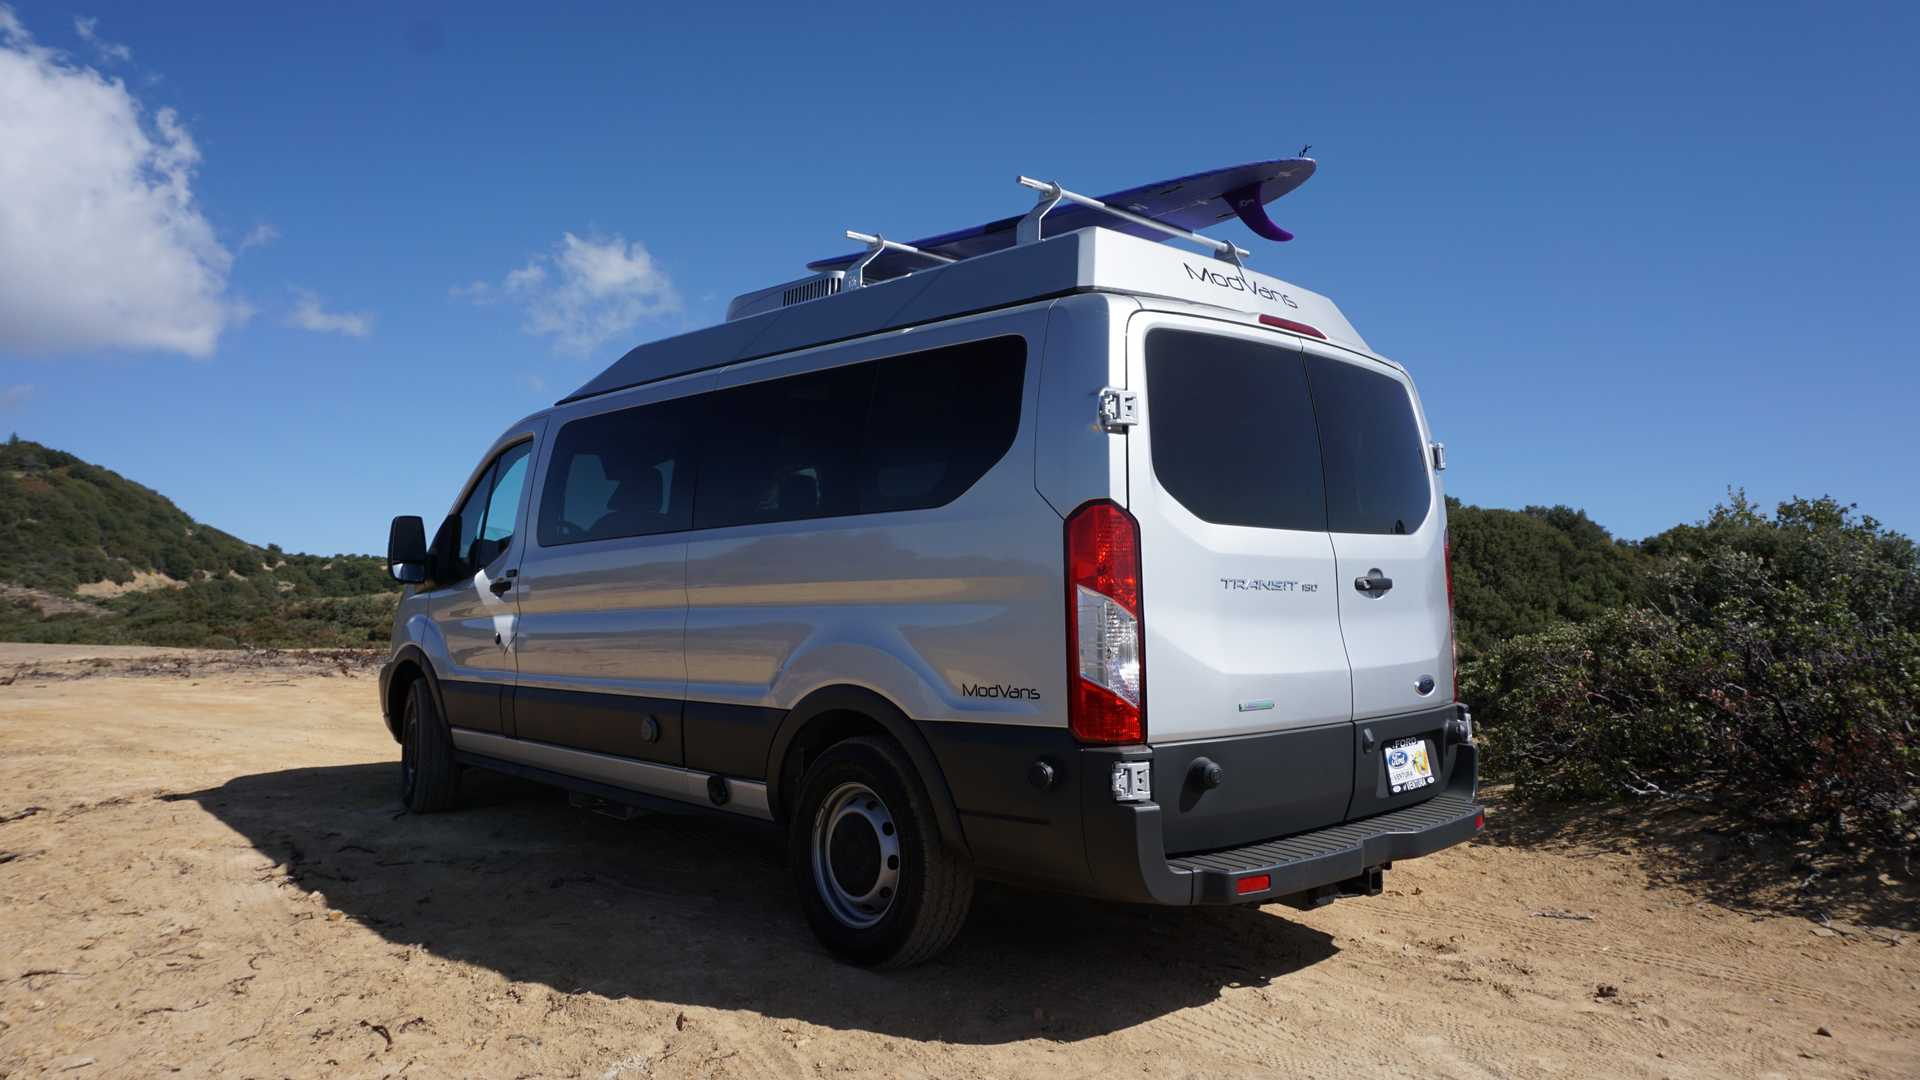 ModVans CV1 Is Your All-In-One Camper, Daily Driver, And